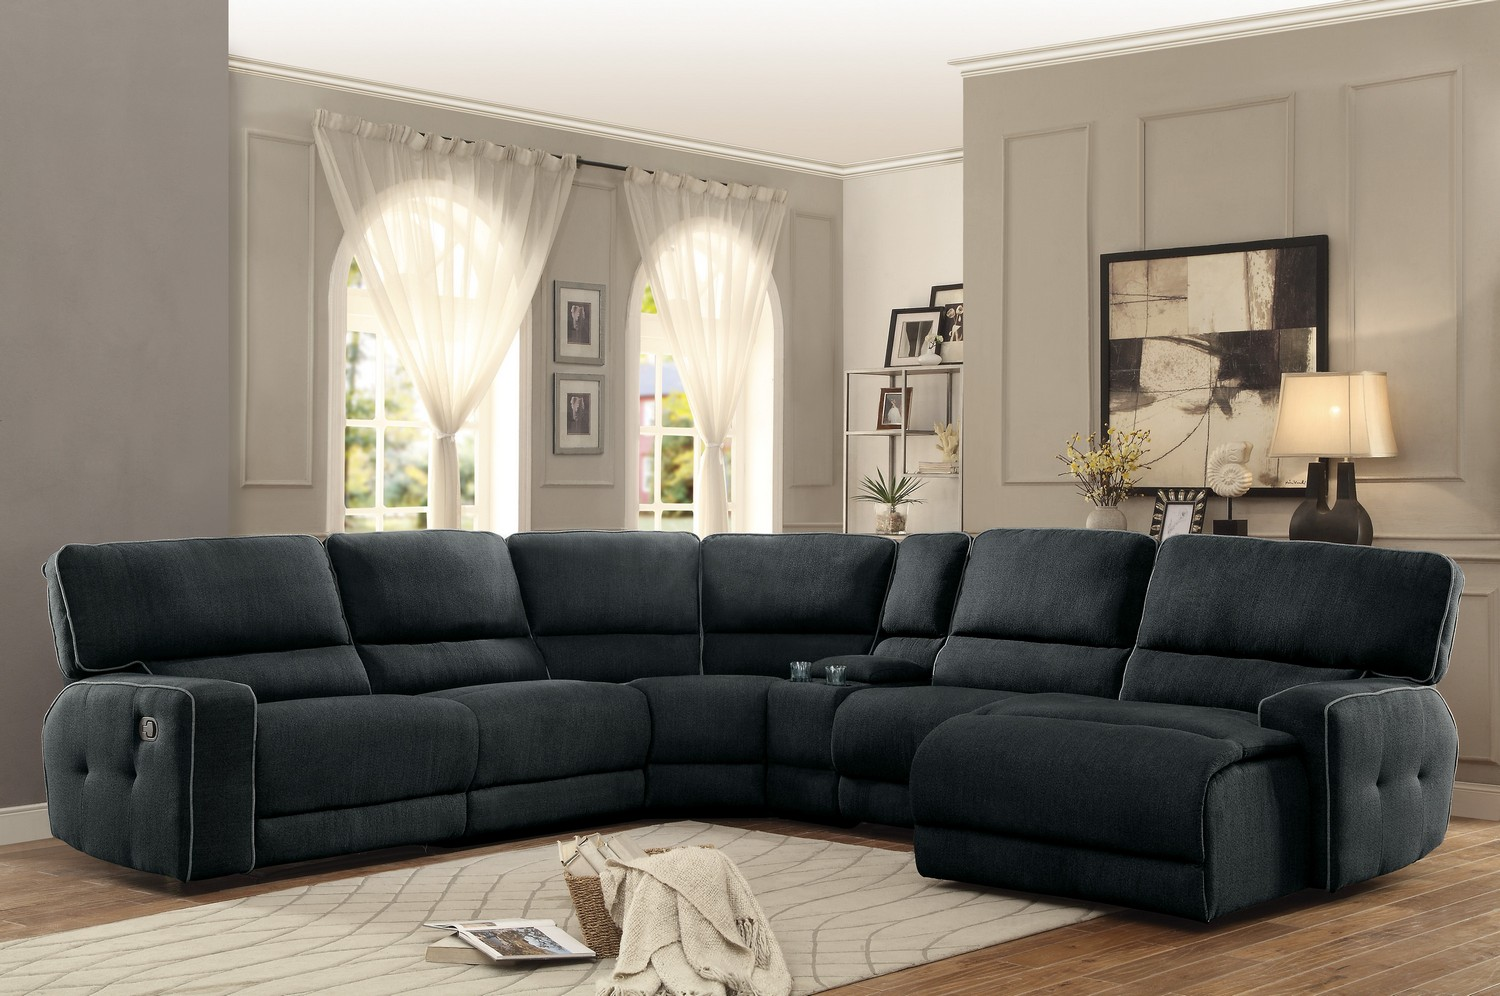 Homelegance Keamey Reclining Sectional Sofa Set A Polyester Dark Grey